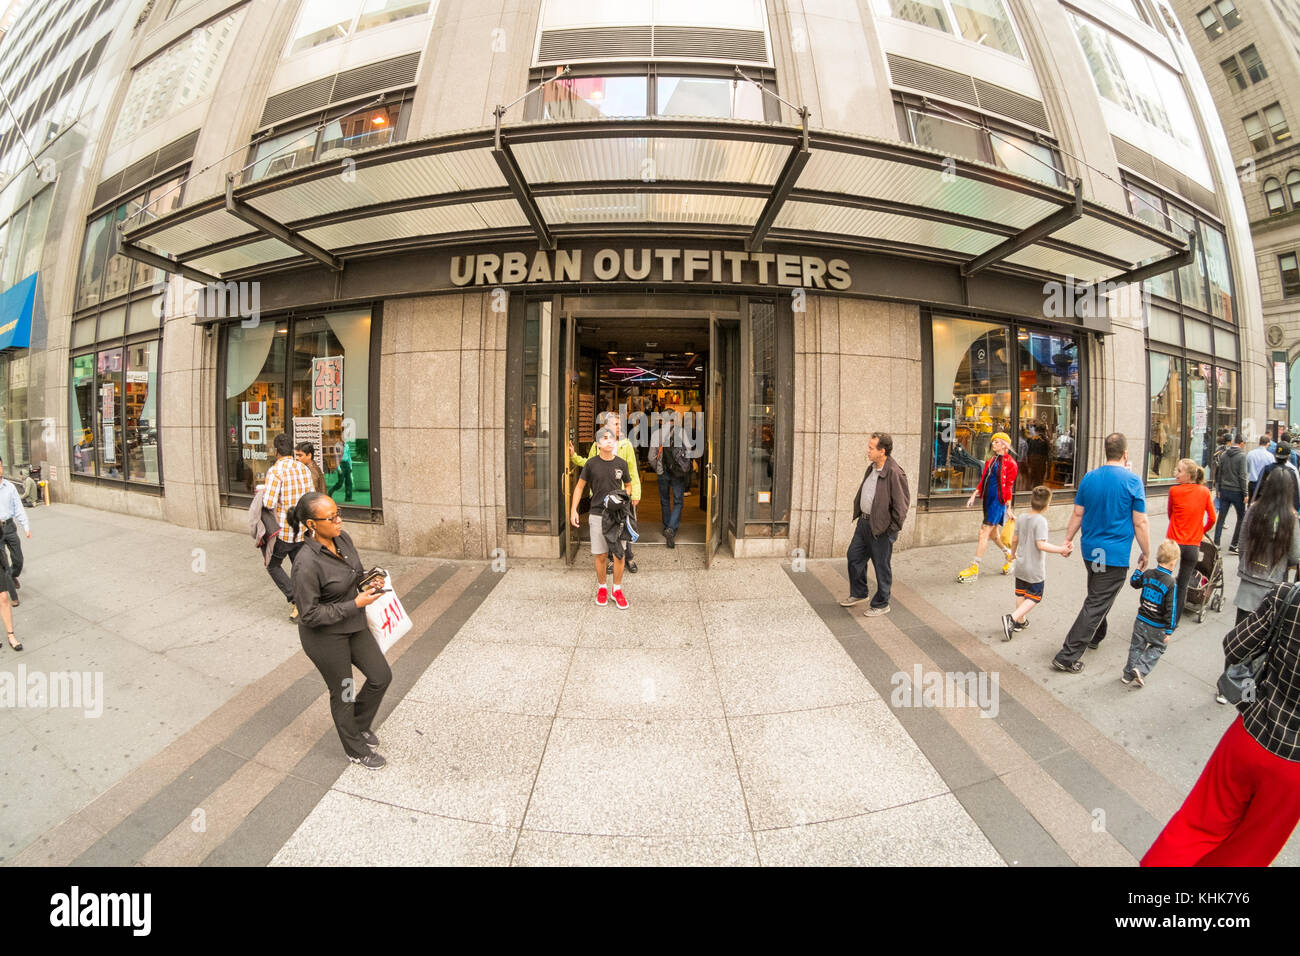 The Urban Outfitters brand targets young adults with a merchandise mix of women's and men's fashion apparel, footwear, beauty and accessories, activewear and gear, and housewares, as well as music, primarily vinyl records and pchitz.tkd: ; 48 years ago (as Free People), Philadelphia, Pennsylvania, U.S.